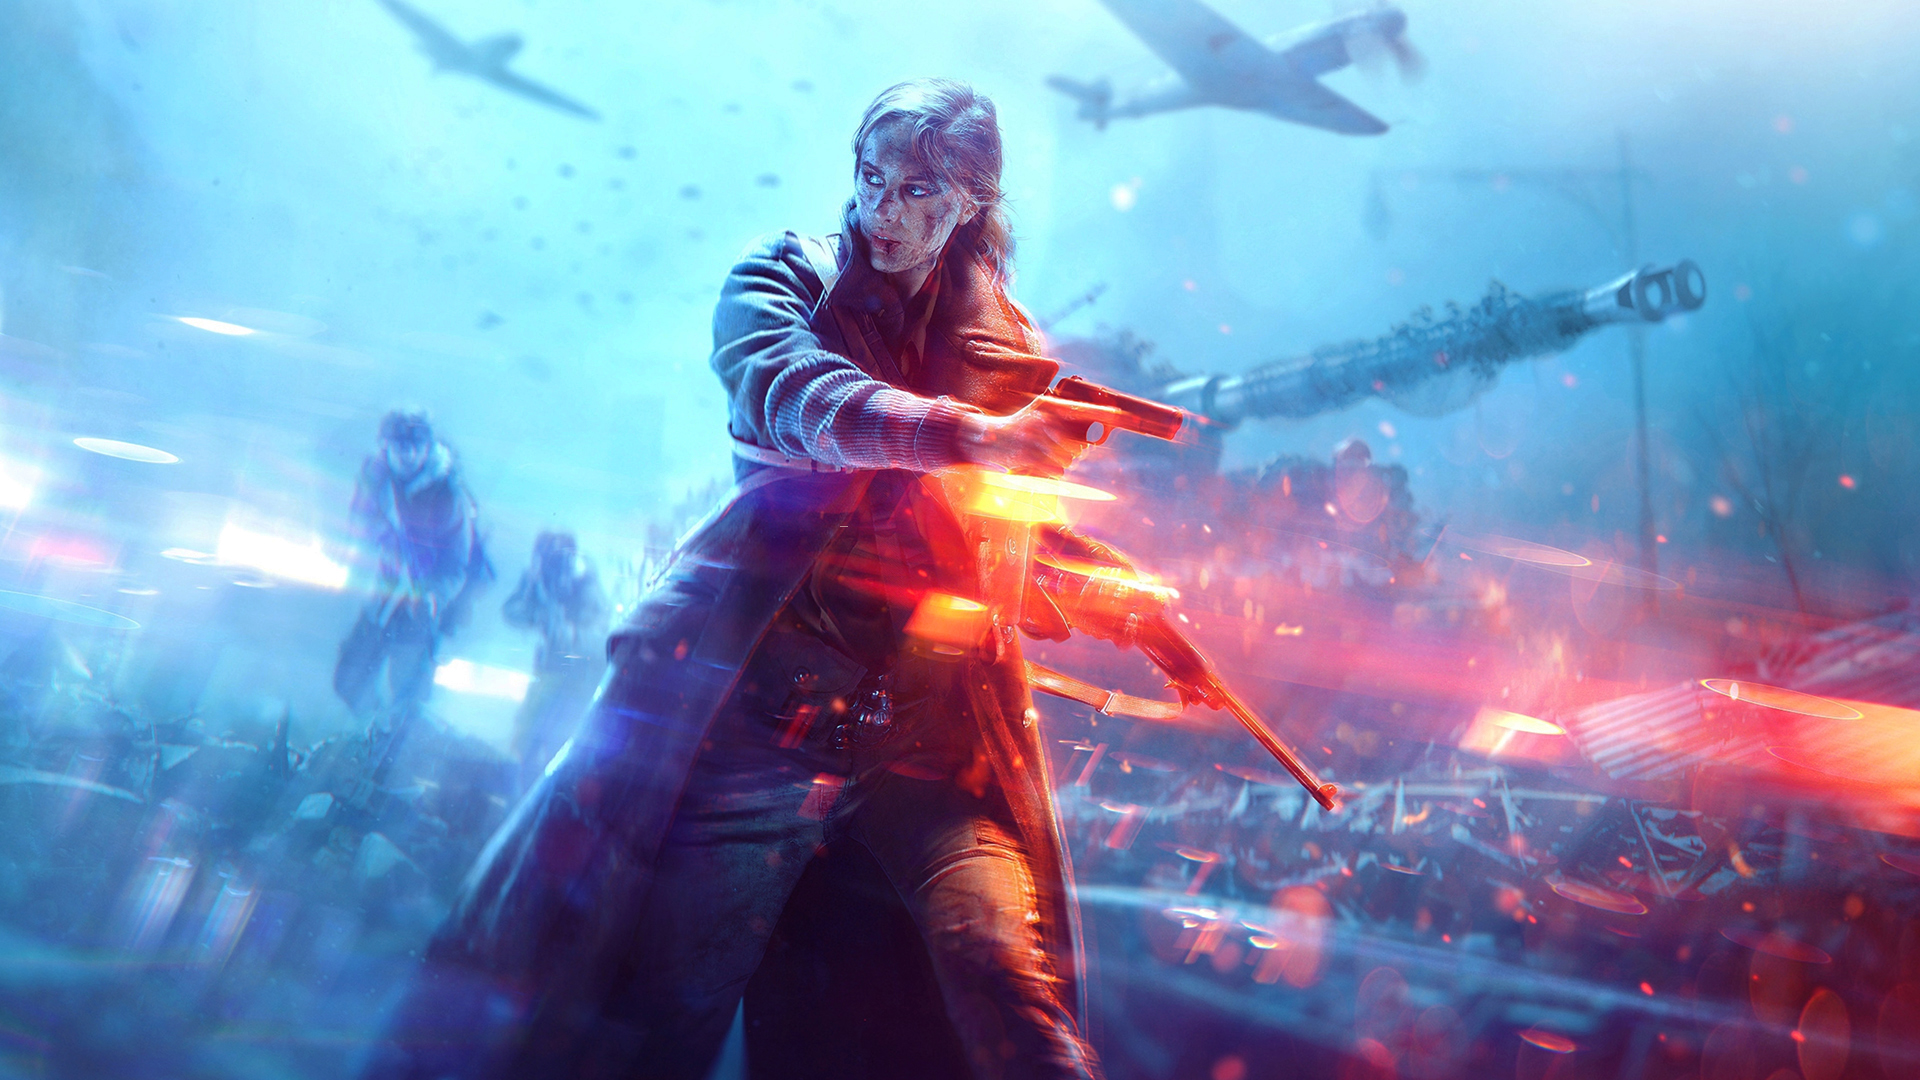 Origin's EA Publisher Sale includes steep discounts on Battlefield 5, The Sims 4, and more